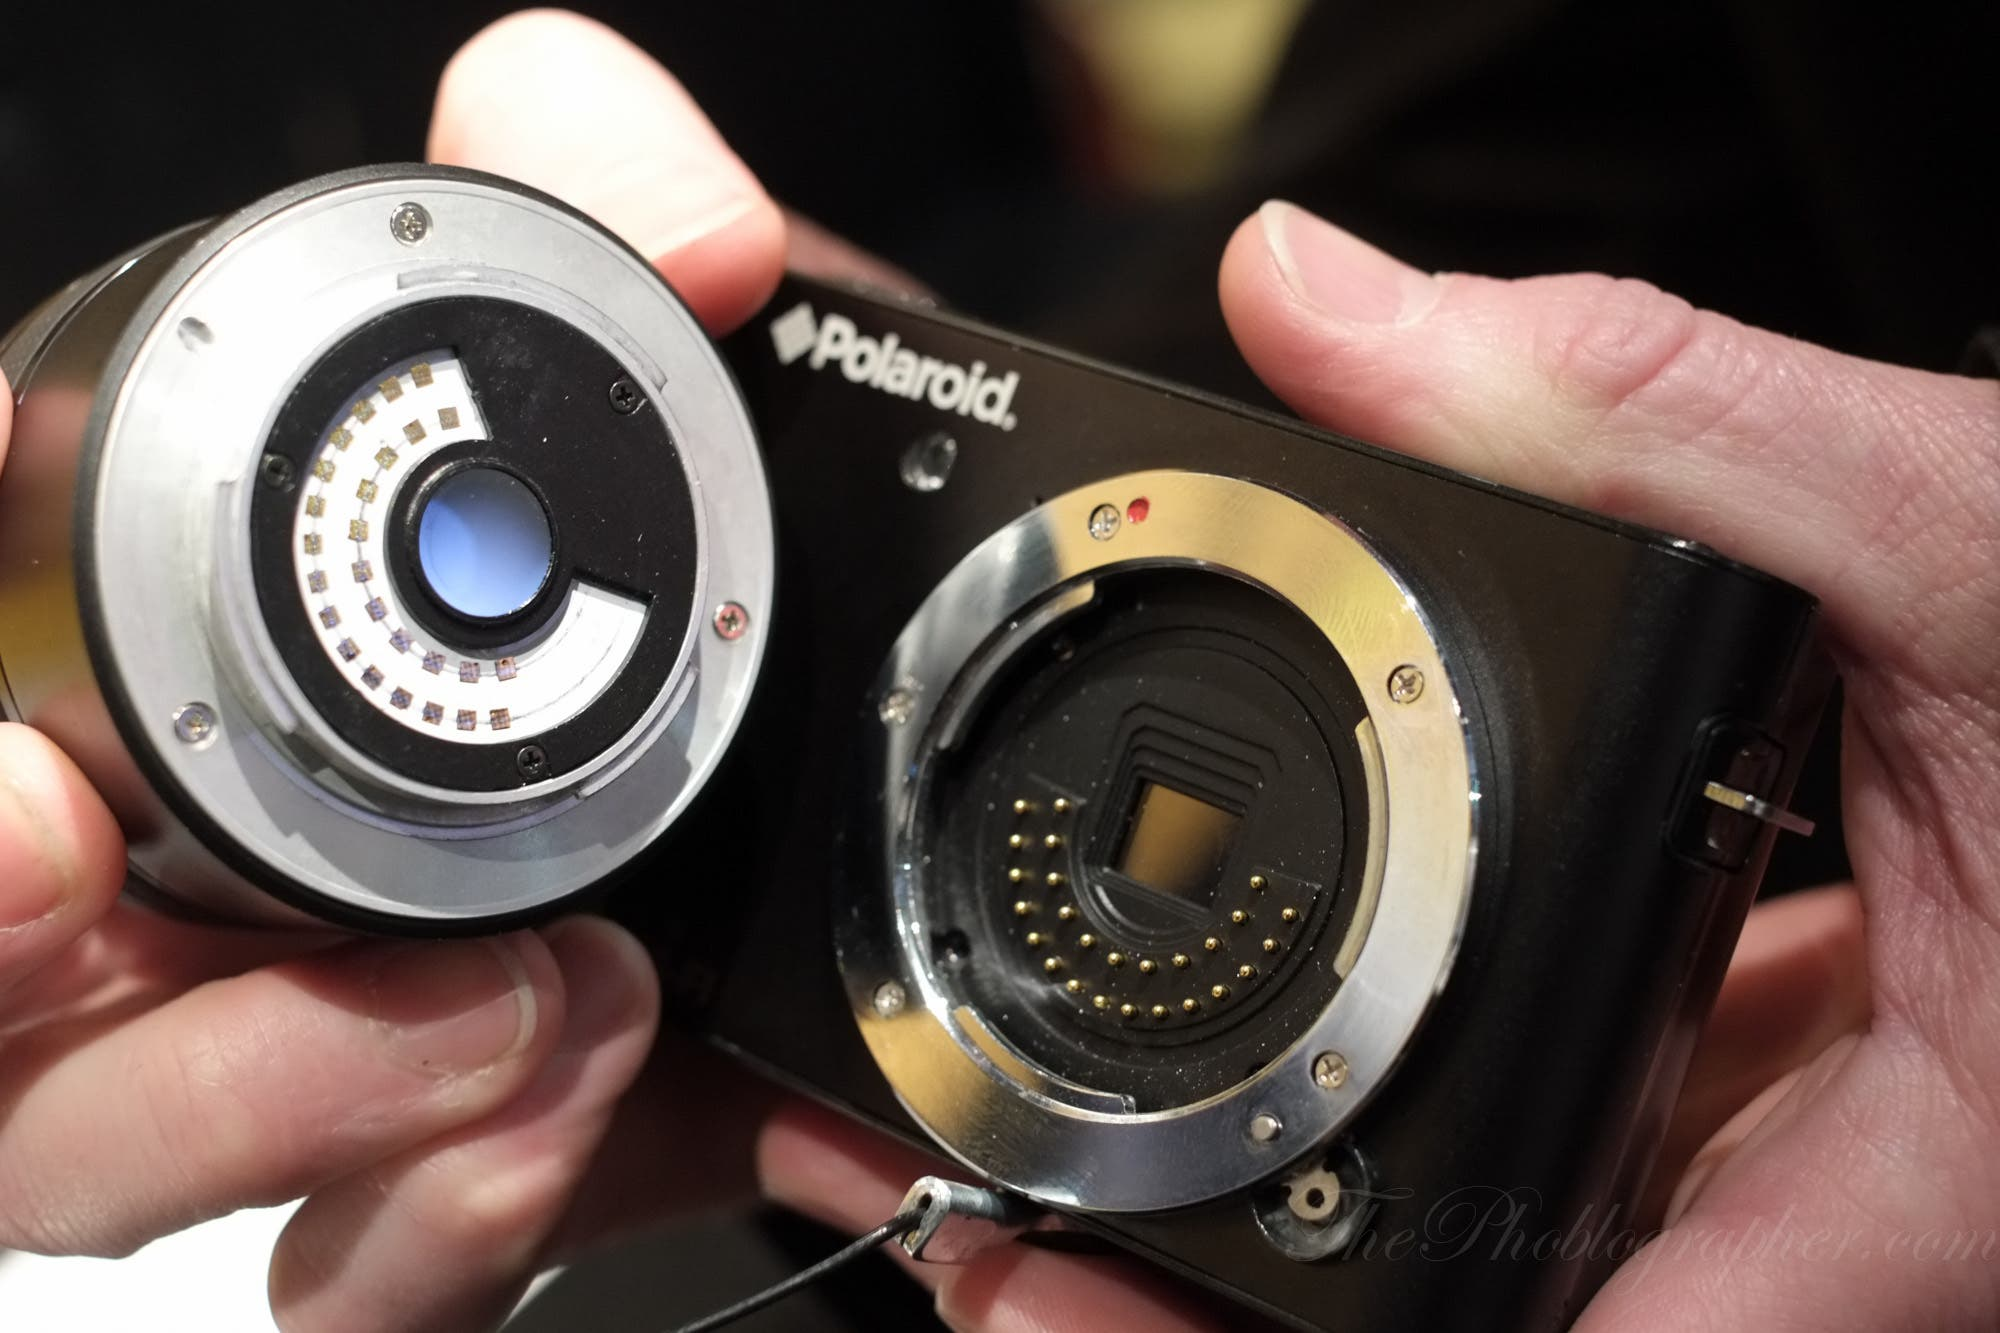 Clearing some confusion up over the new polaroid for Camera camera camera